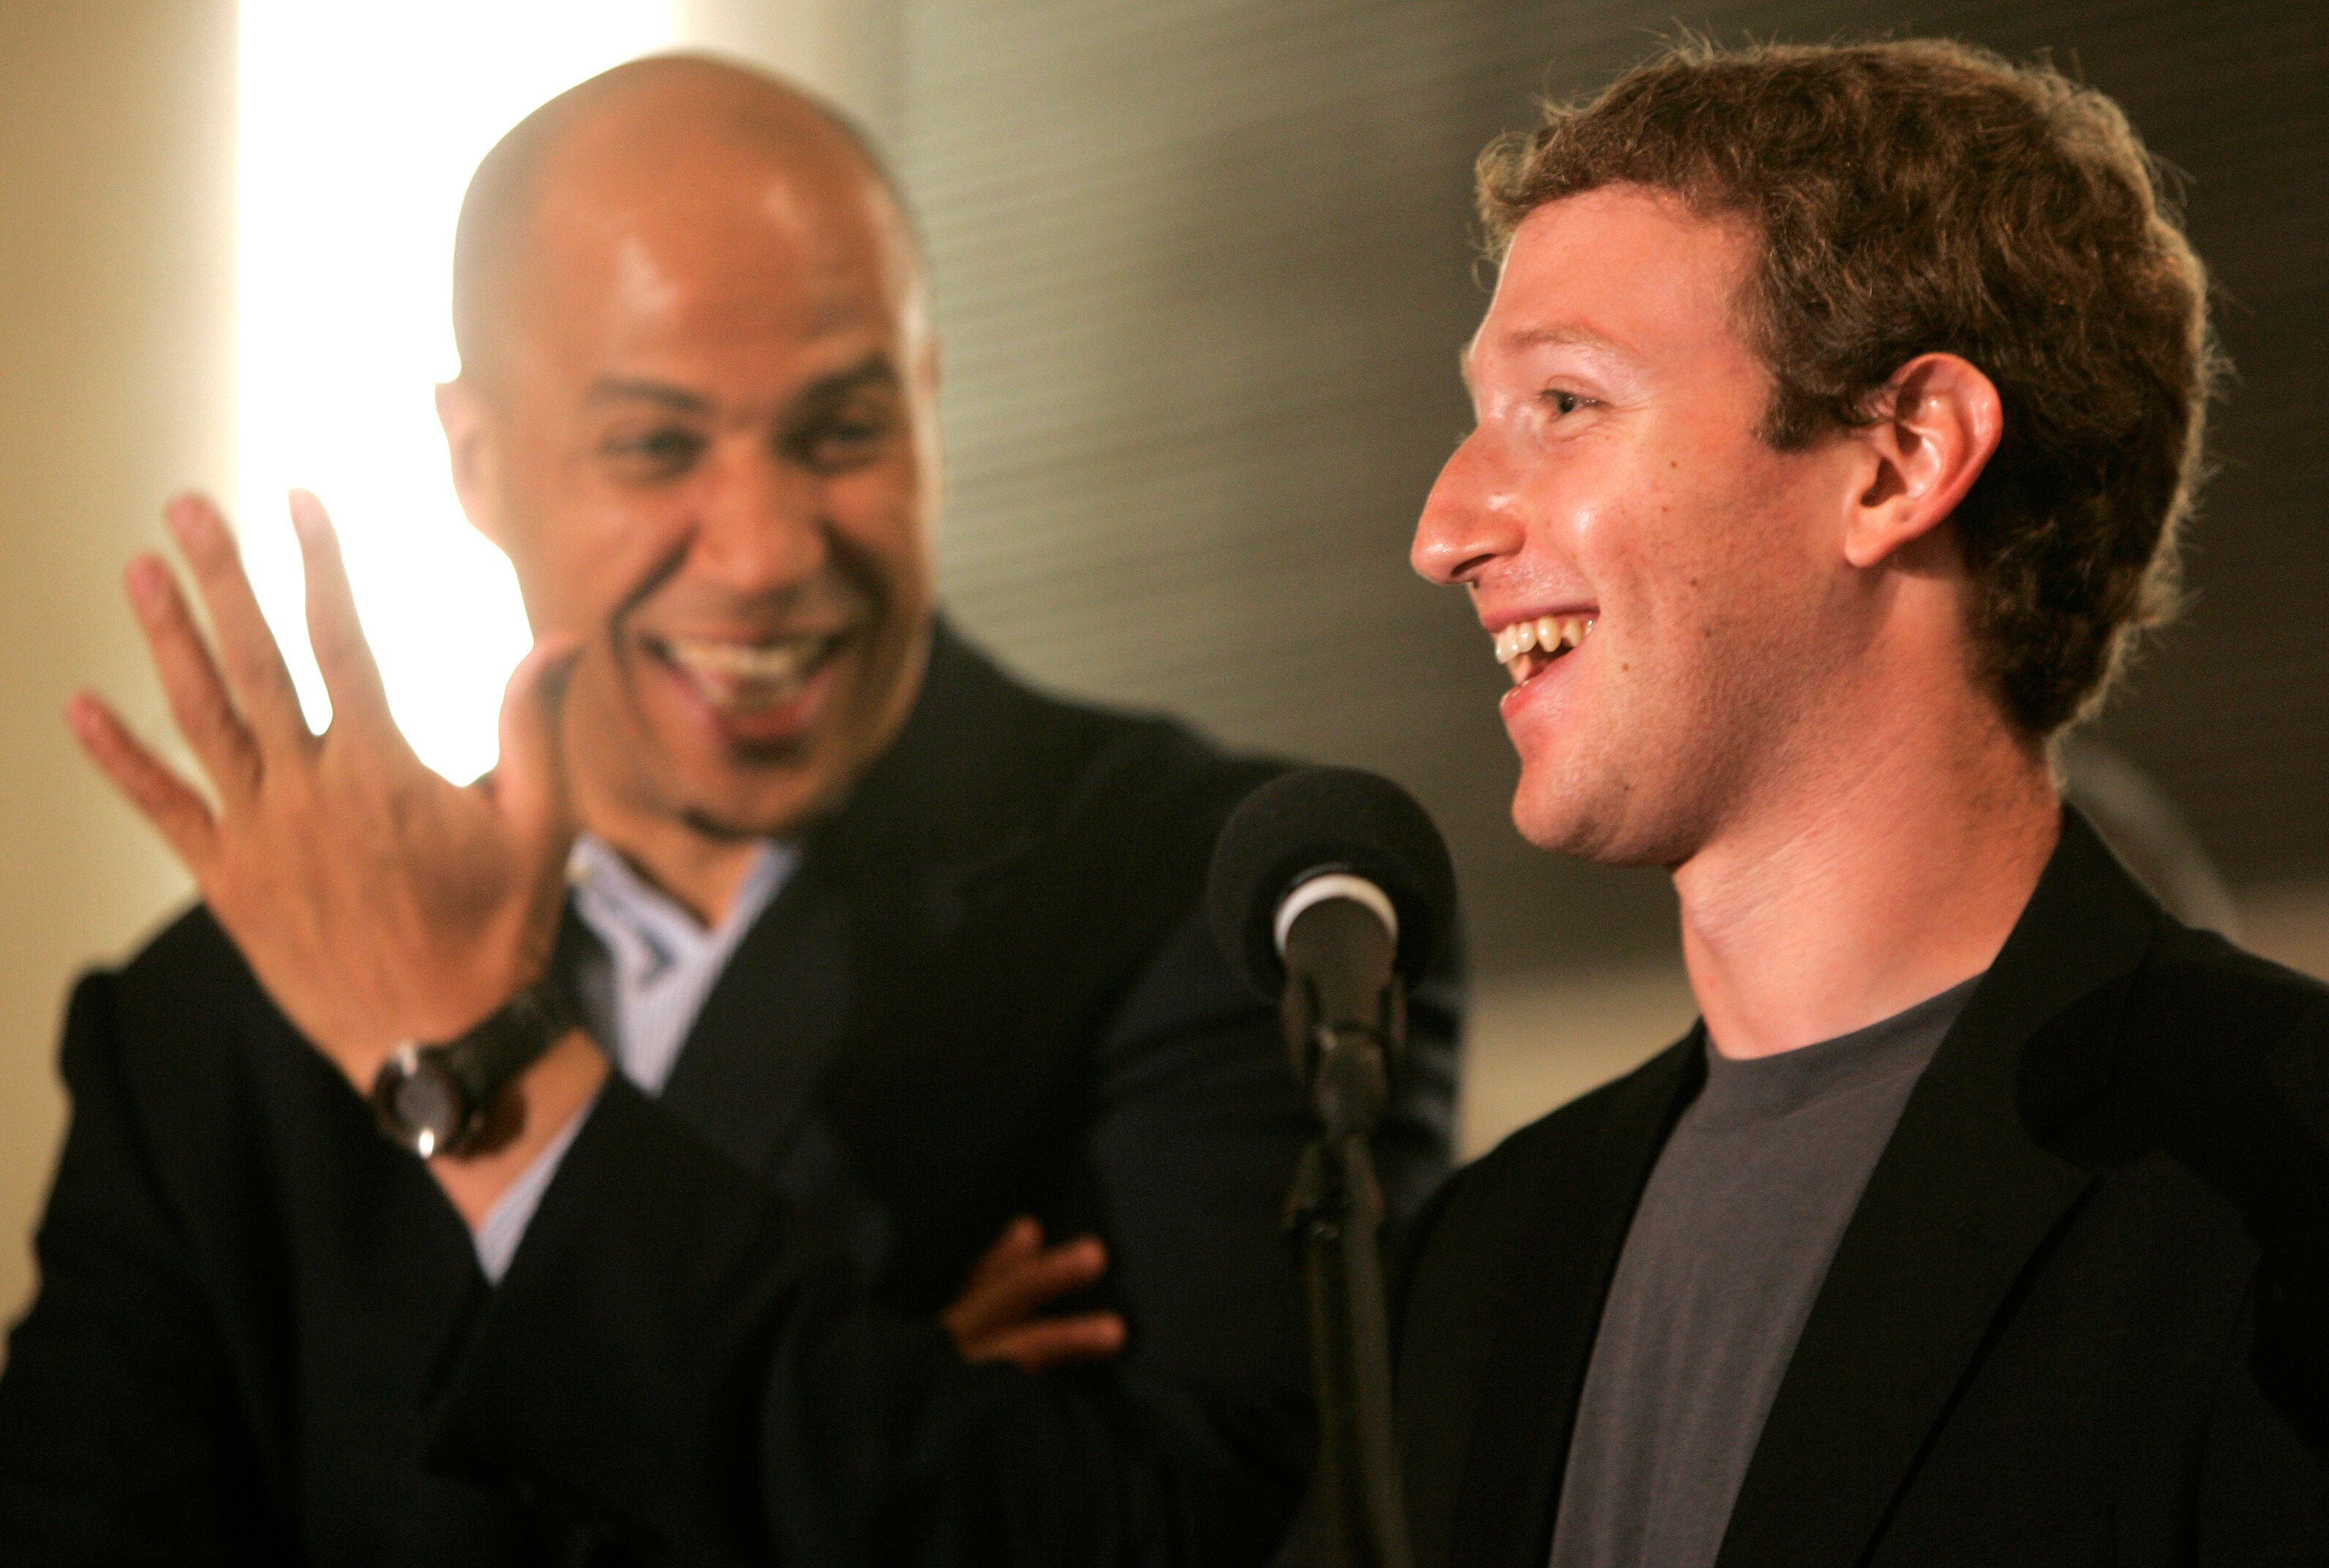 Newark Mayor Cory Booker, left, laughs as Mark Zuckerberg, right, founder and CEO of Facebook, talks about his donation of $100 million to help Newark public schools during a press conference at the Robert Treat Hotel in Newark, N.J., Saturday, Sept. 25, 2010. Also there is N.J. Gov. Chris Christie, not in picture. (AP Photo/Rich Schultz)